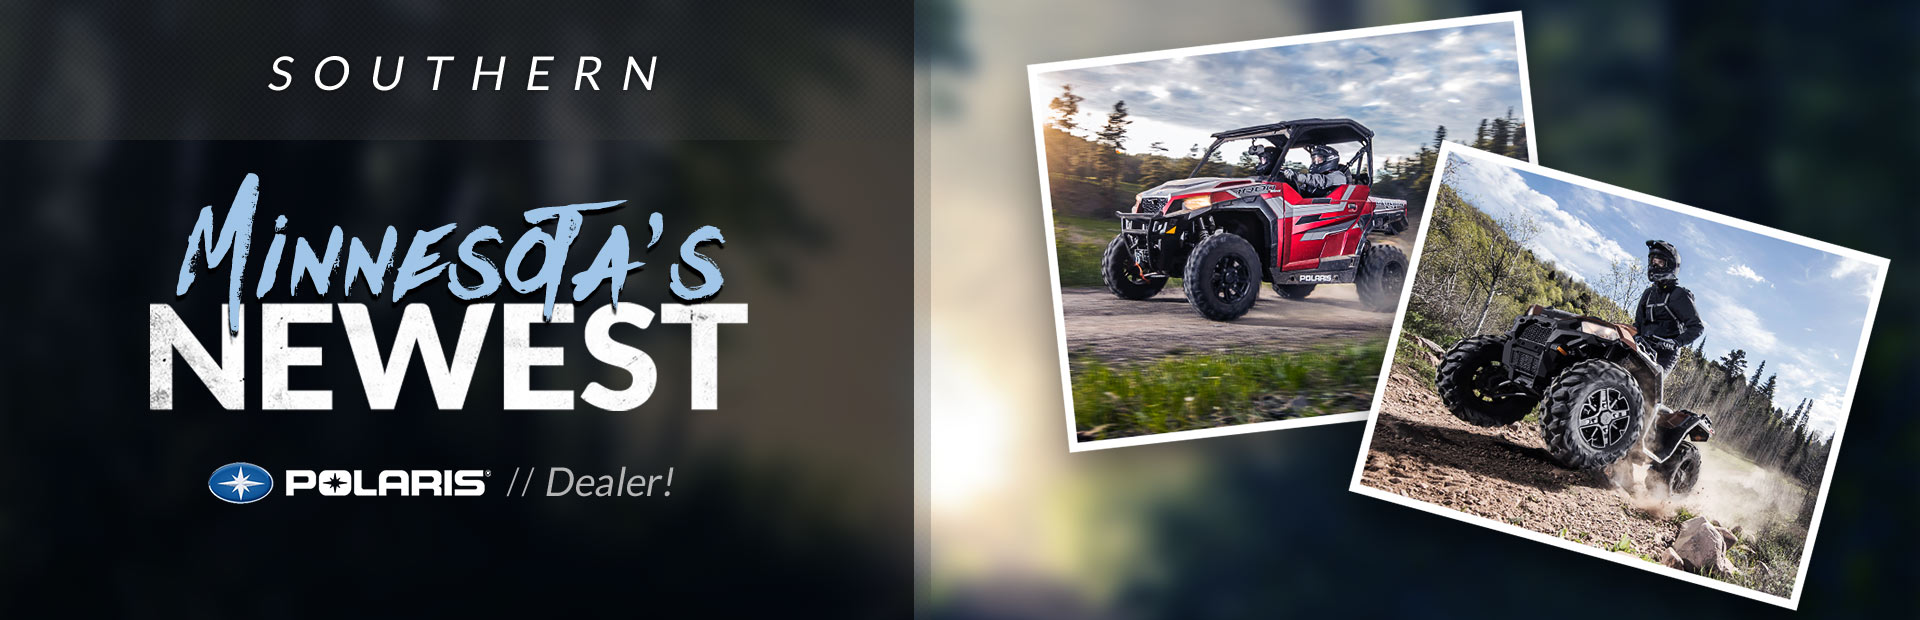 Southern Minnesota's Newest Polaris Dealer: Snell Powersports & Equipment